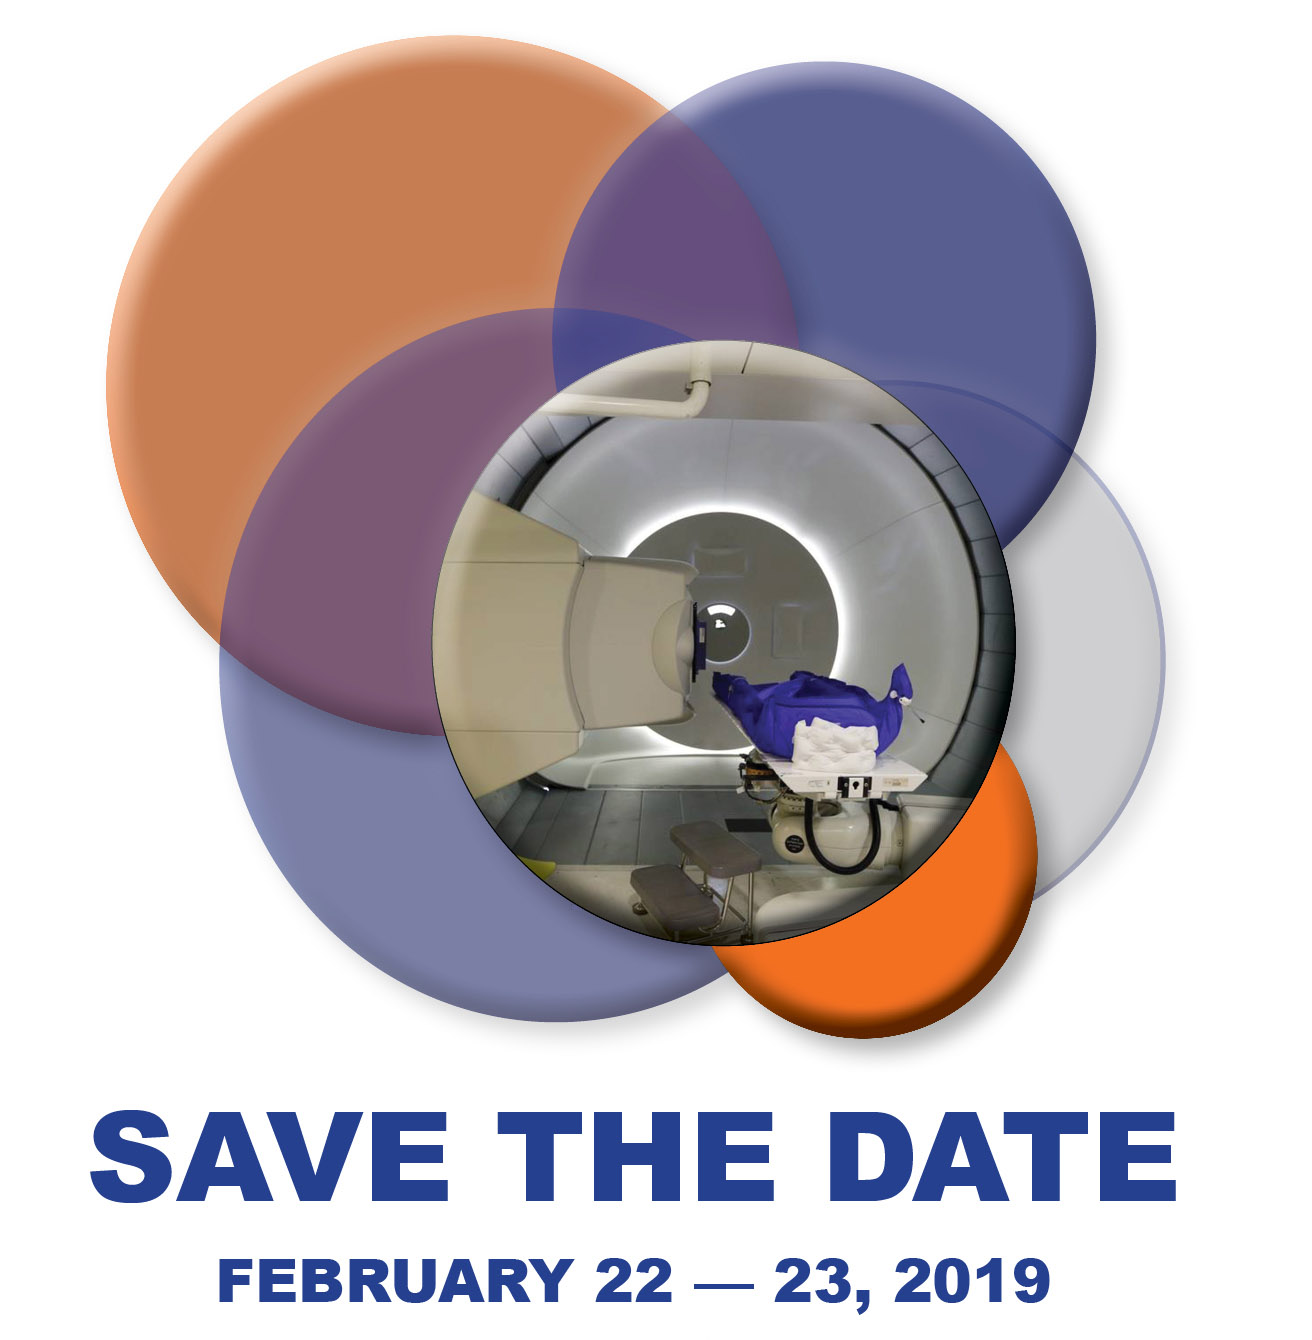 Save the Date for the 2019 Research Seminar